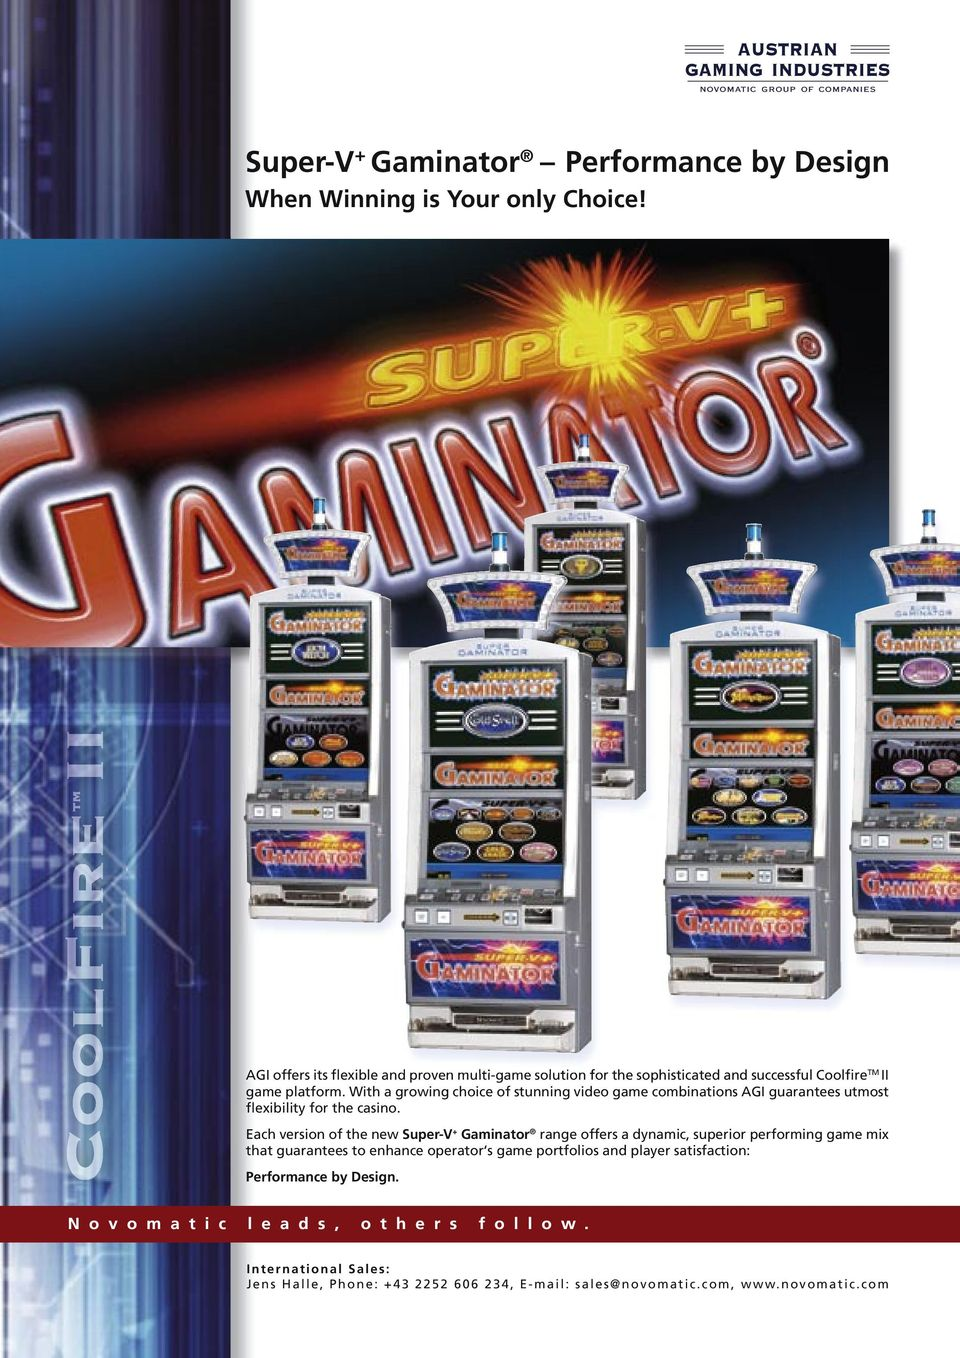 With a growing choice of stunning video game combinations AGI guarantees utmost flexibility for the casino.